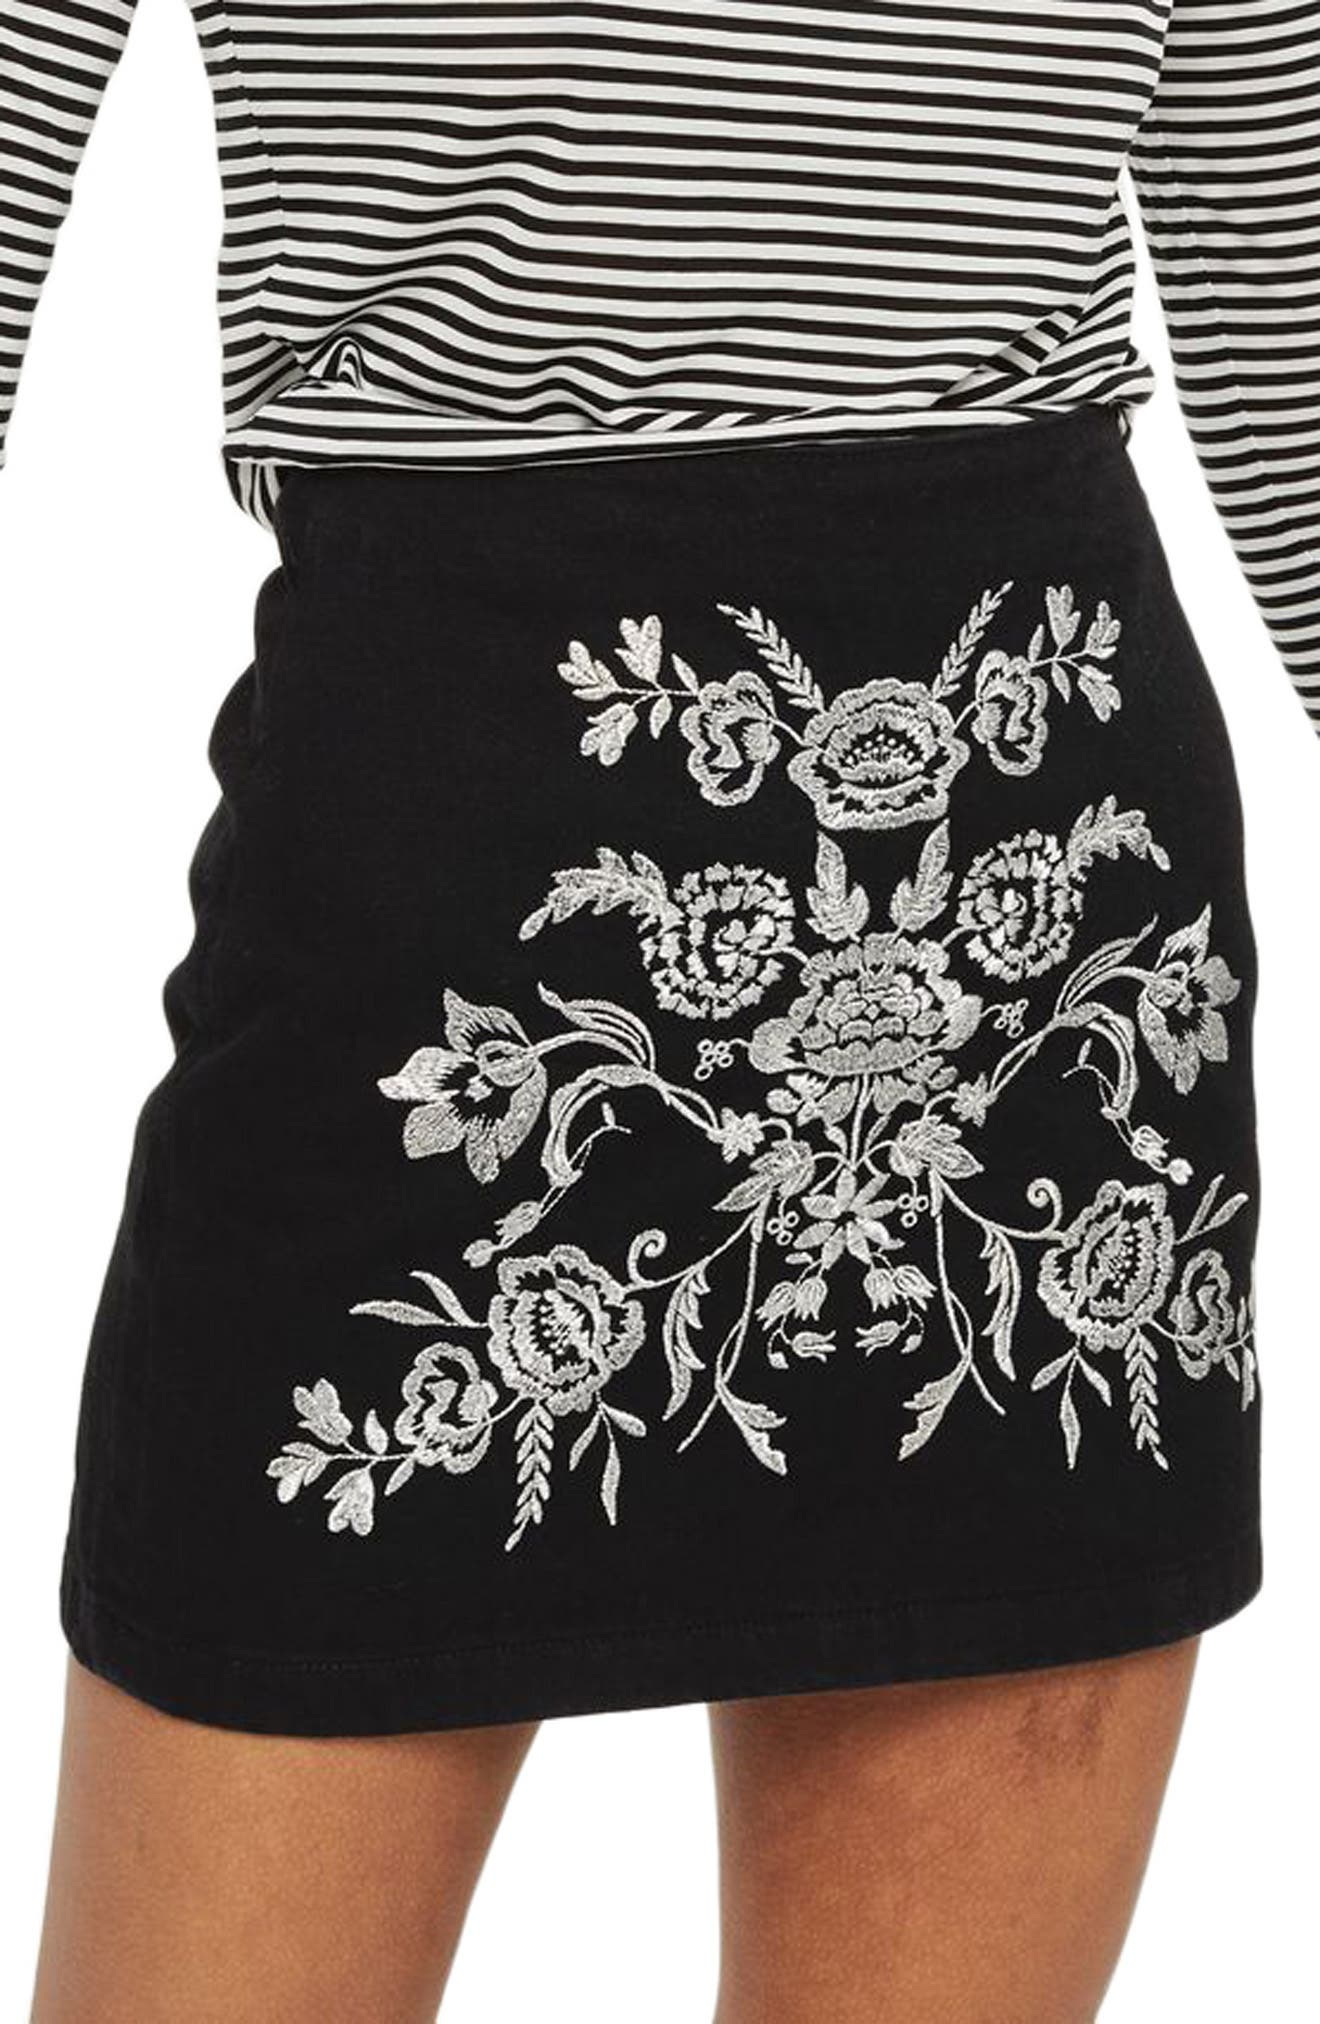 Alternate Image 1 Selected - Topshop Floral Embroidered A-Line Skirt